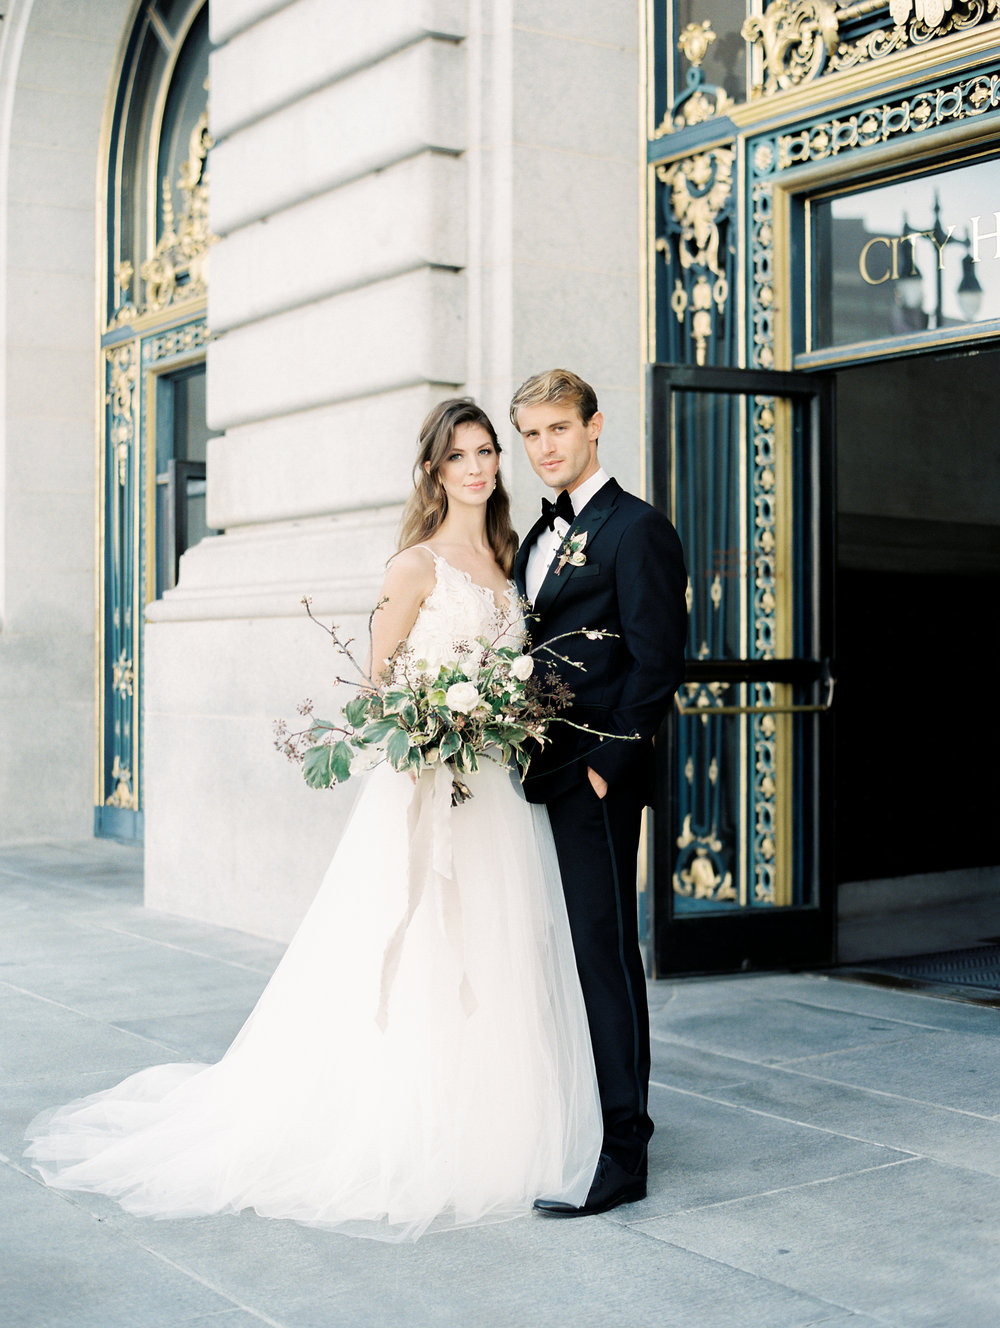 BlackTieElopement-97.jpg